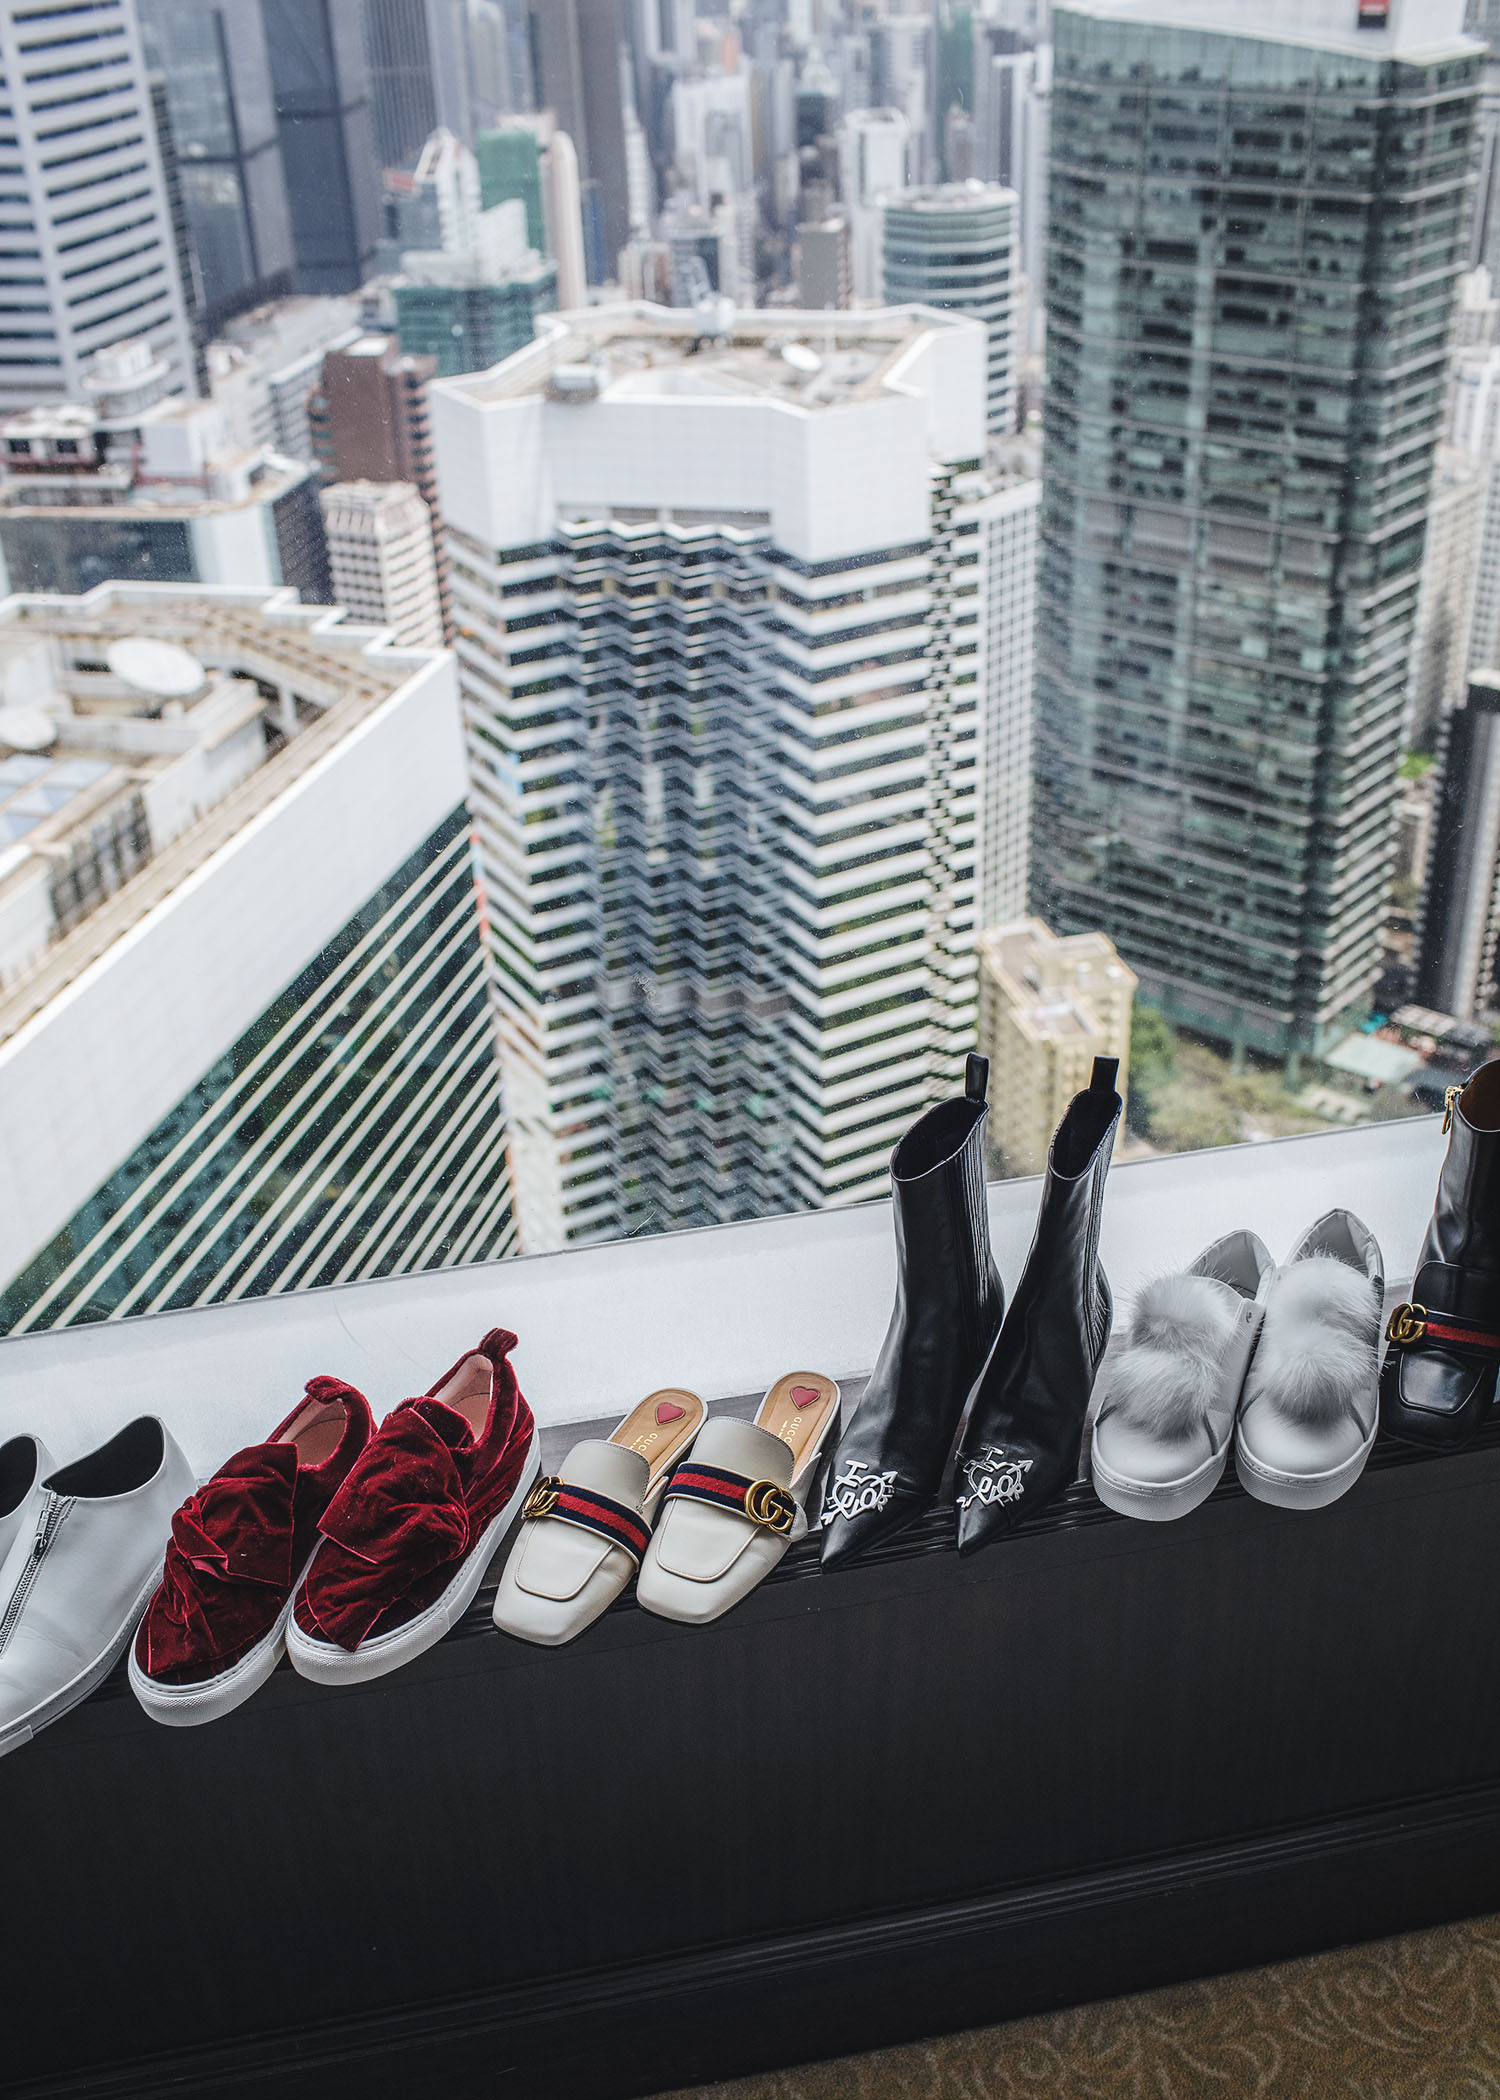 Fashion and travel blogger influencer Jenny Tsang of Tsangtastic traveling in Hong Kong, at the Island Shangri-La Hotel. Shoe collection, Stella McCartney Zip Sneaker, Josefinas Red Velvet Louise Bow Sneaker, Gucci White Leather Slipper, Dior 'I Love Dior' Pointed Boots, Gucci Pearl Boots.